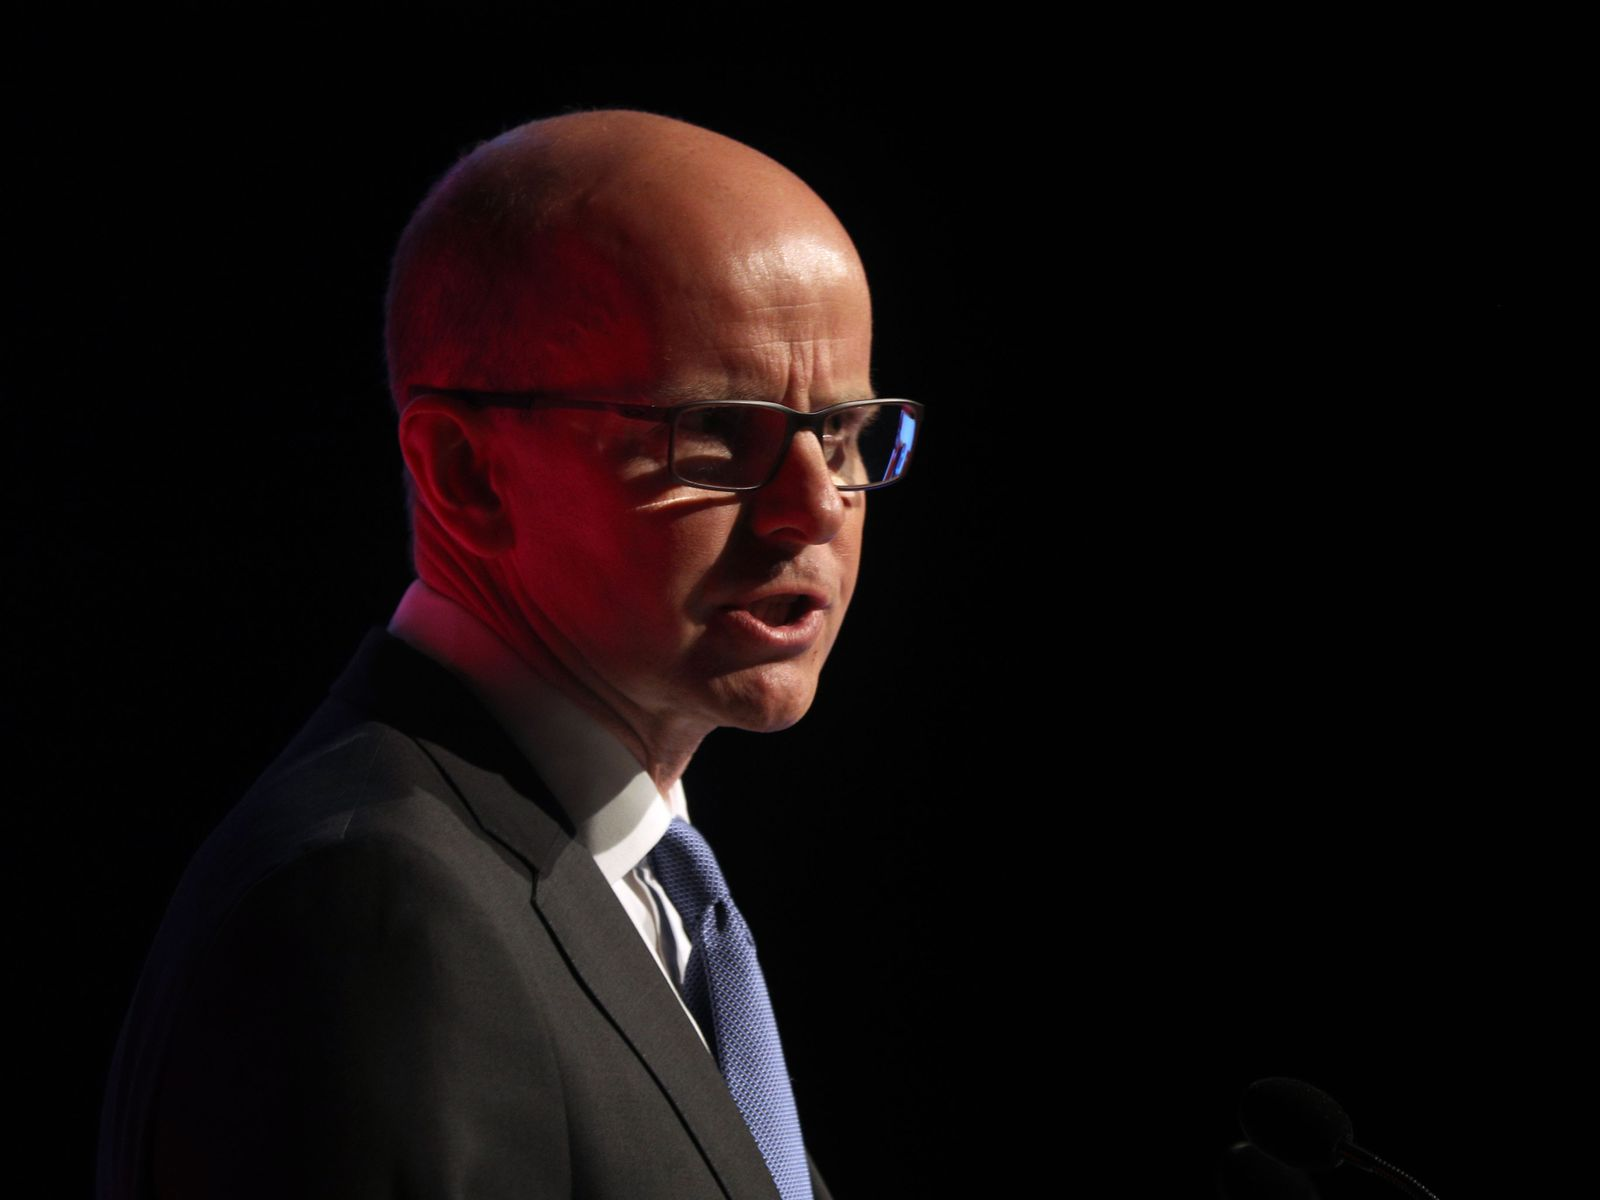 GCHQ intelligence chief threatens 'brazen' Russia with UK's 'tools'